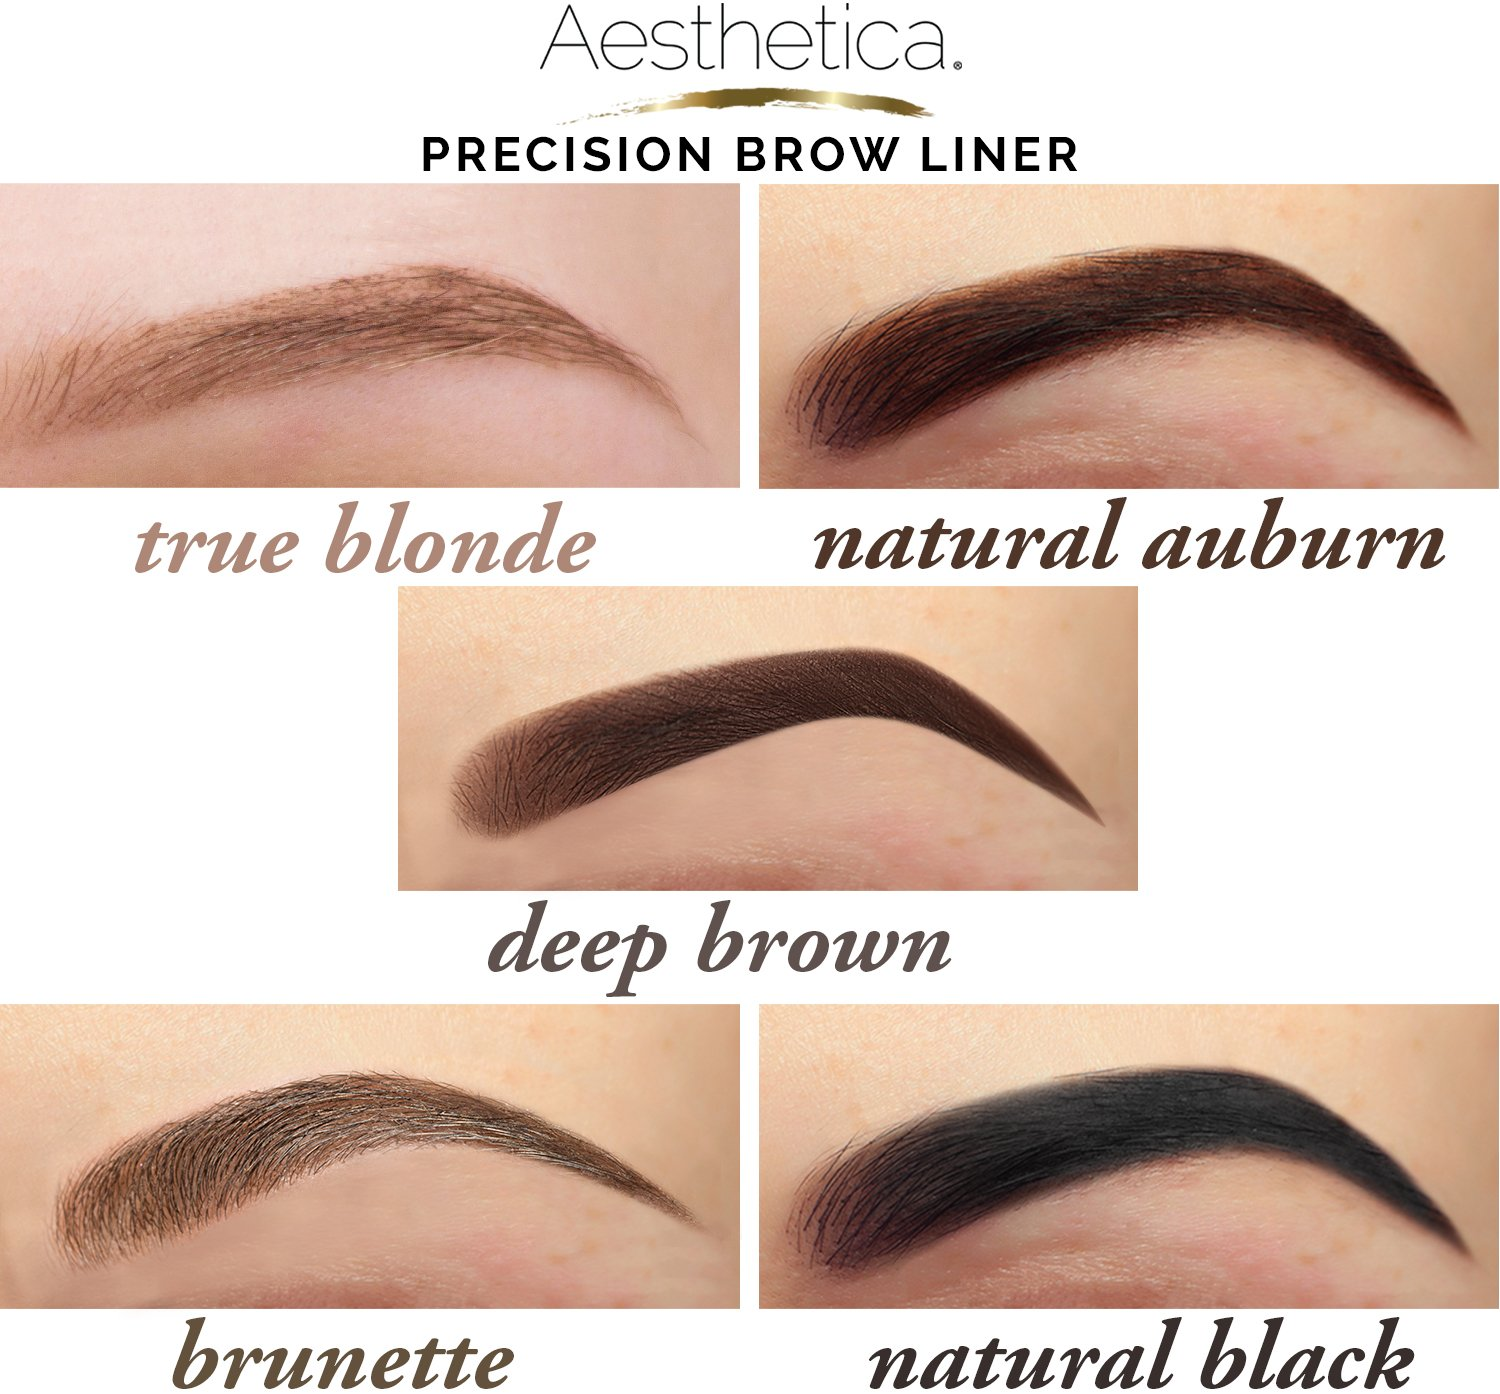 Amazon.com : Aesthetica Precision Brow Liner - Double Ended ...